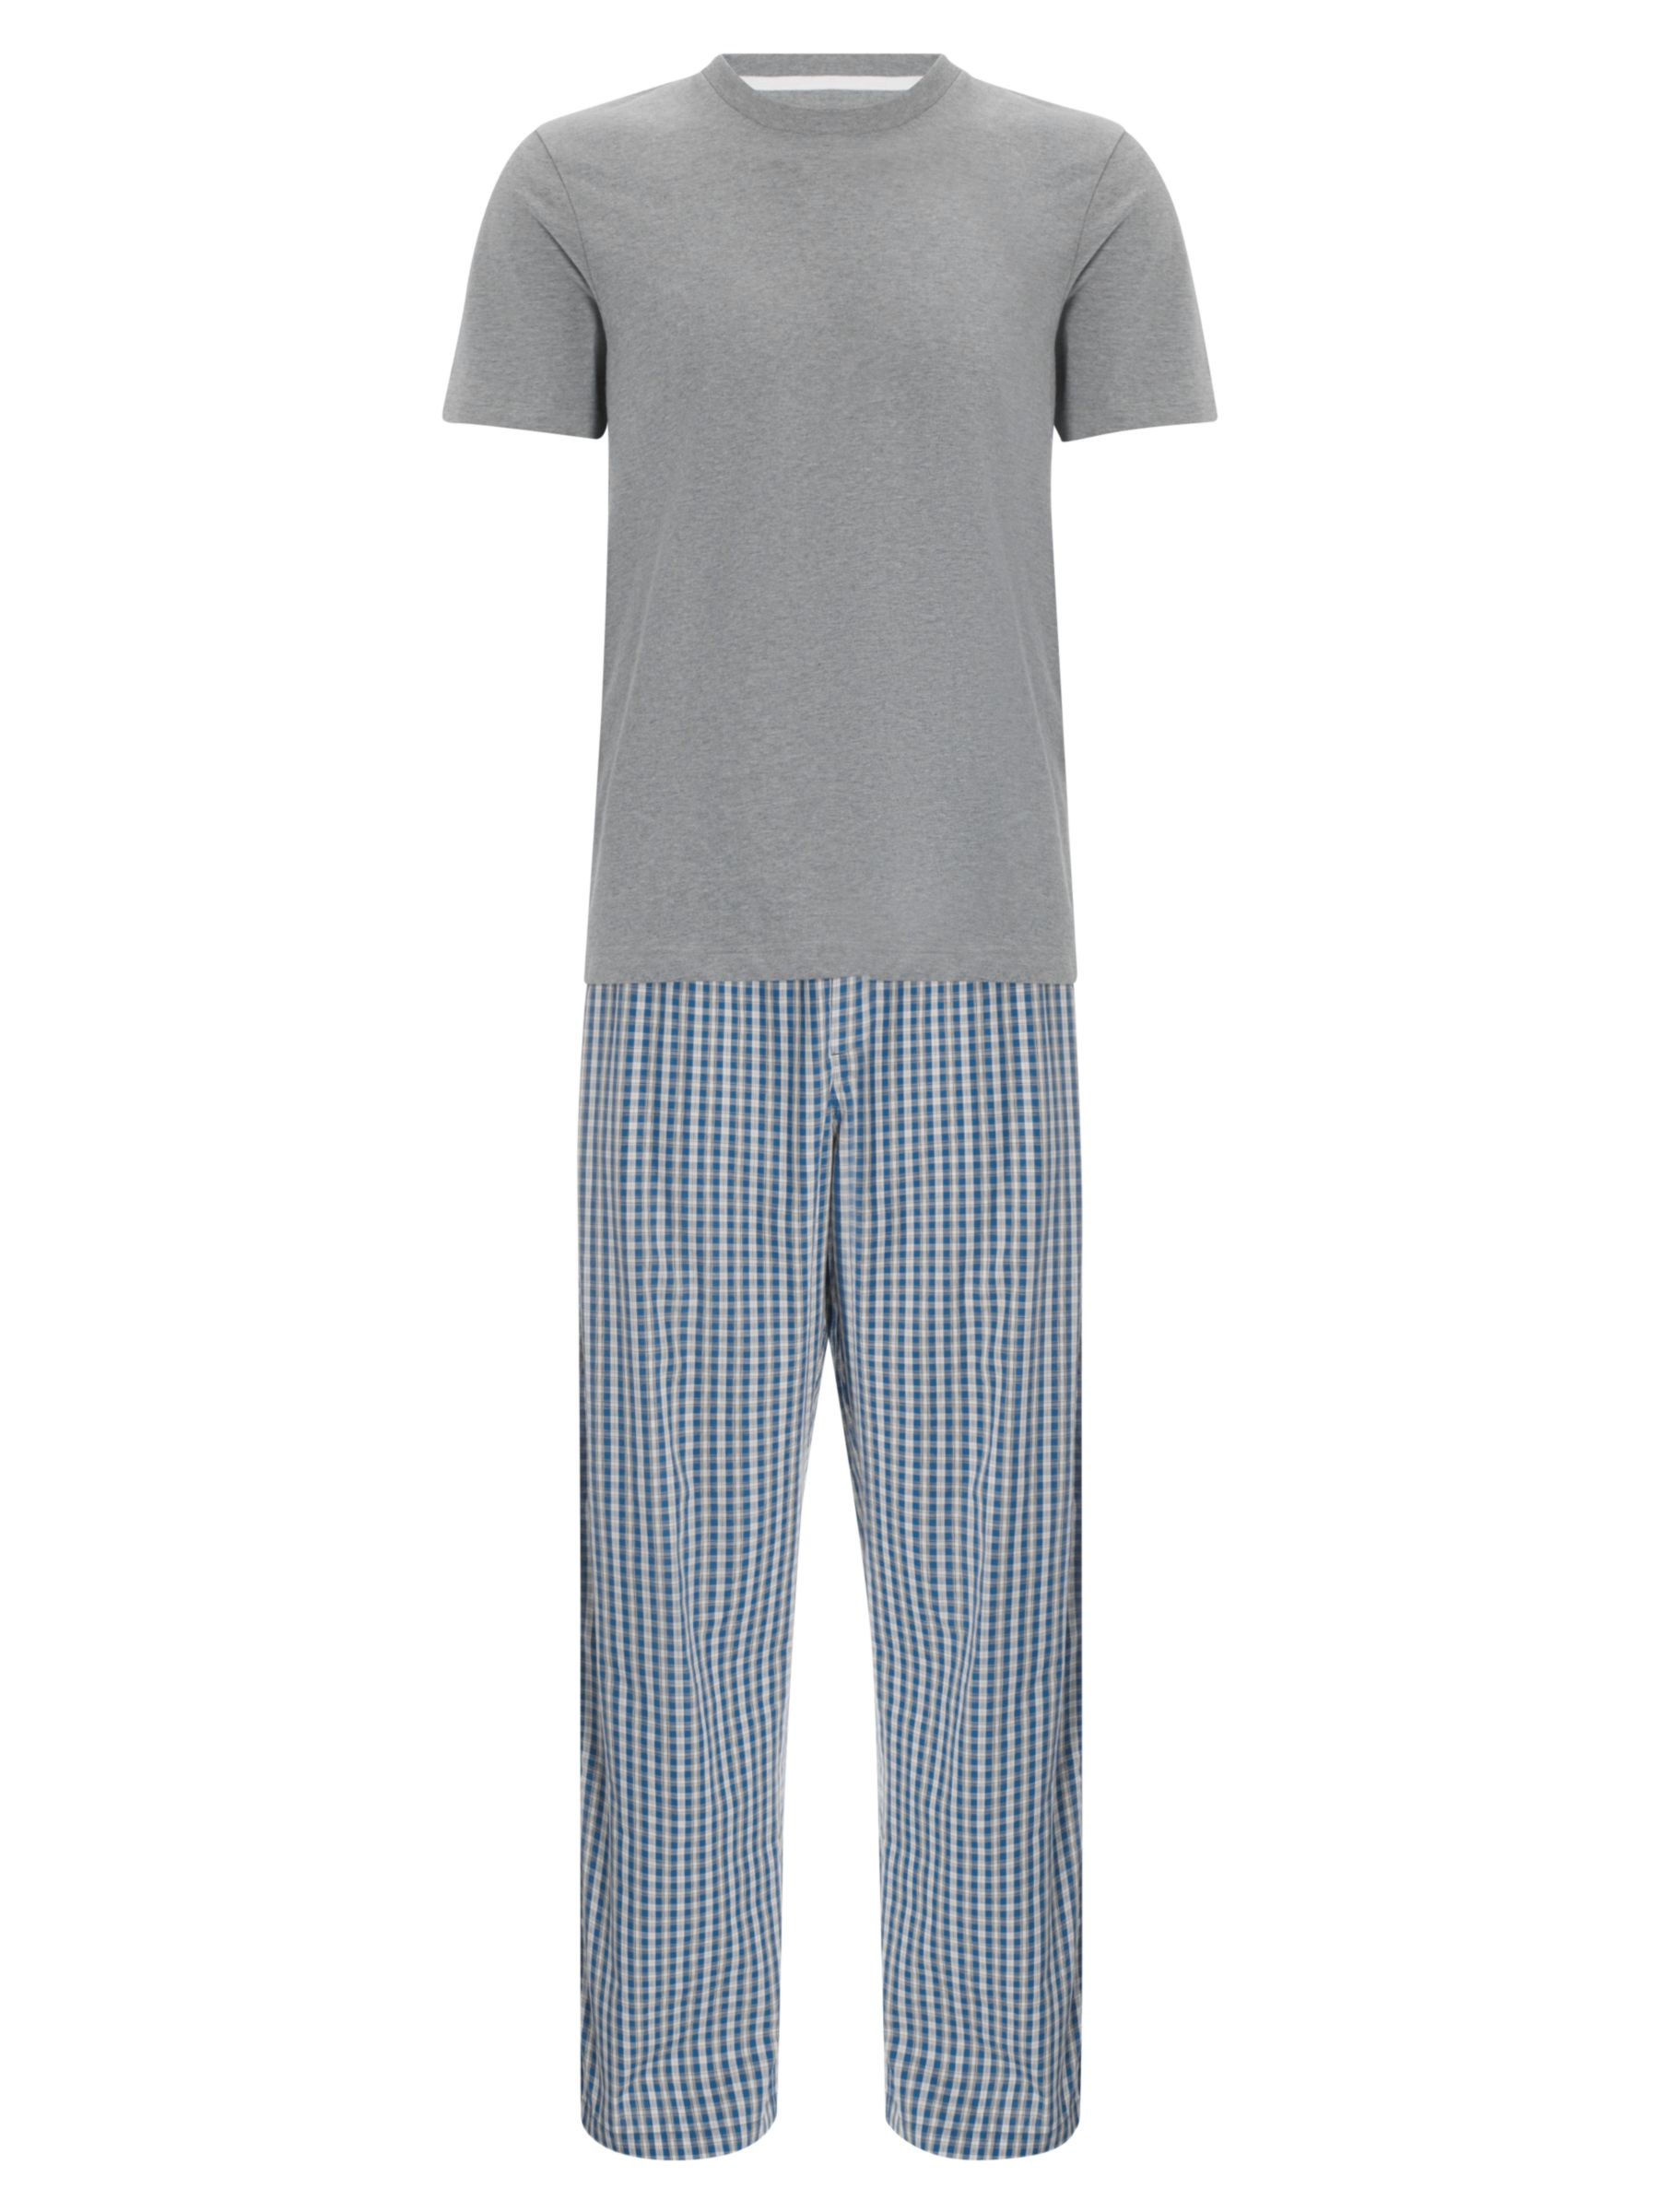 John Lewis Short Sleeve T-Shirt and Gingham Lounge Pants, Blue/Grey